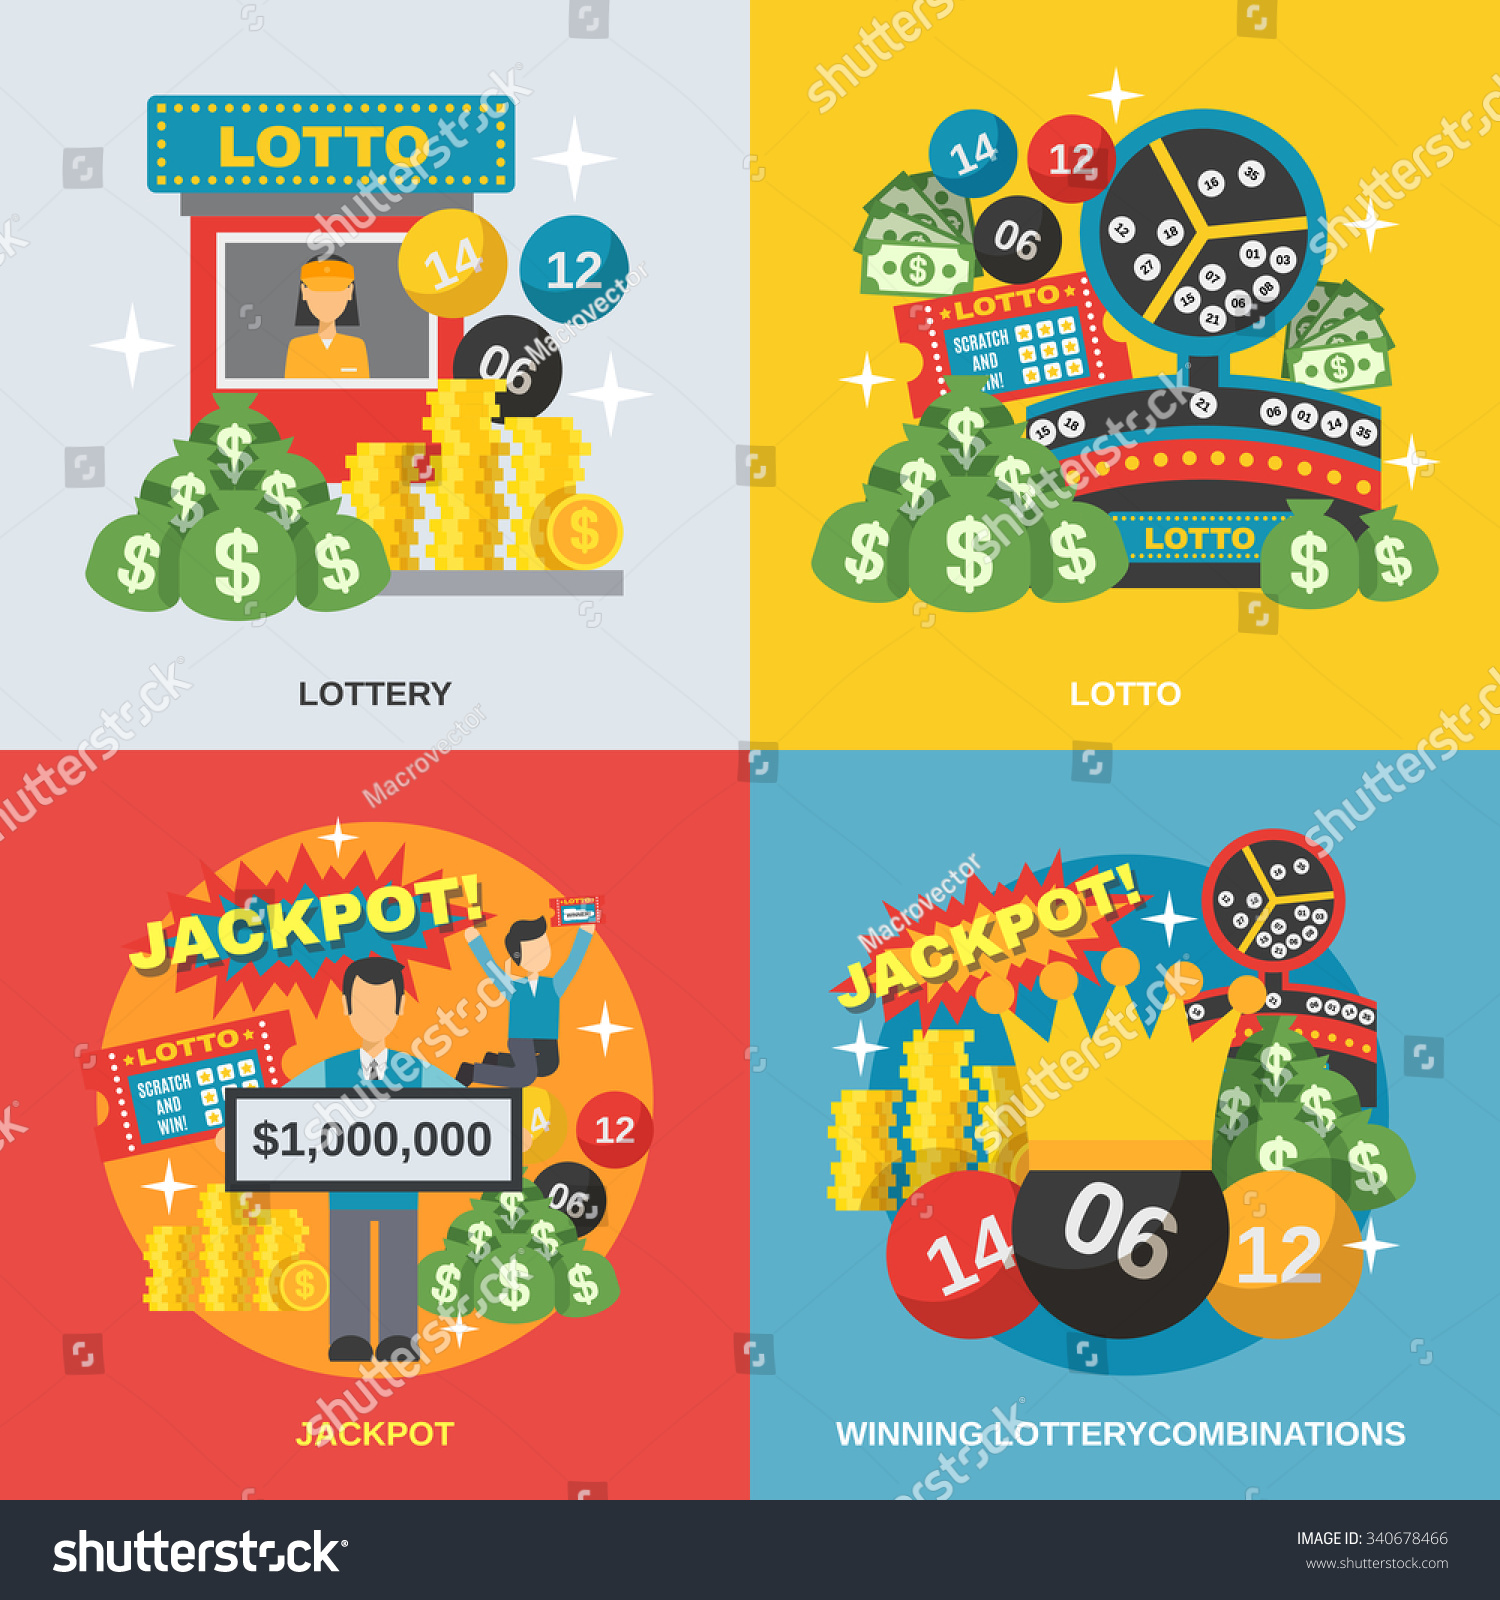 lottery design concept set winning combinations stock vector lottery design concept set winning combinations flat icons isolated vector illustration